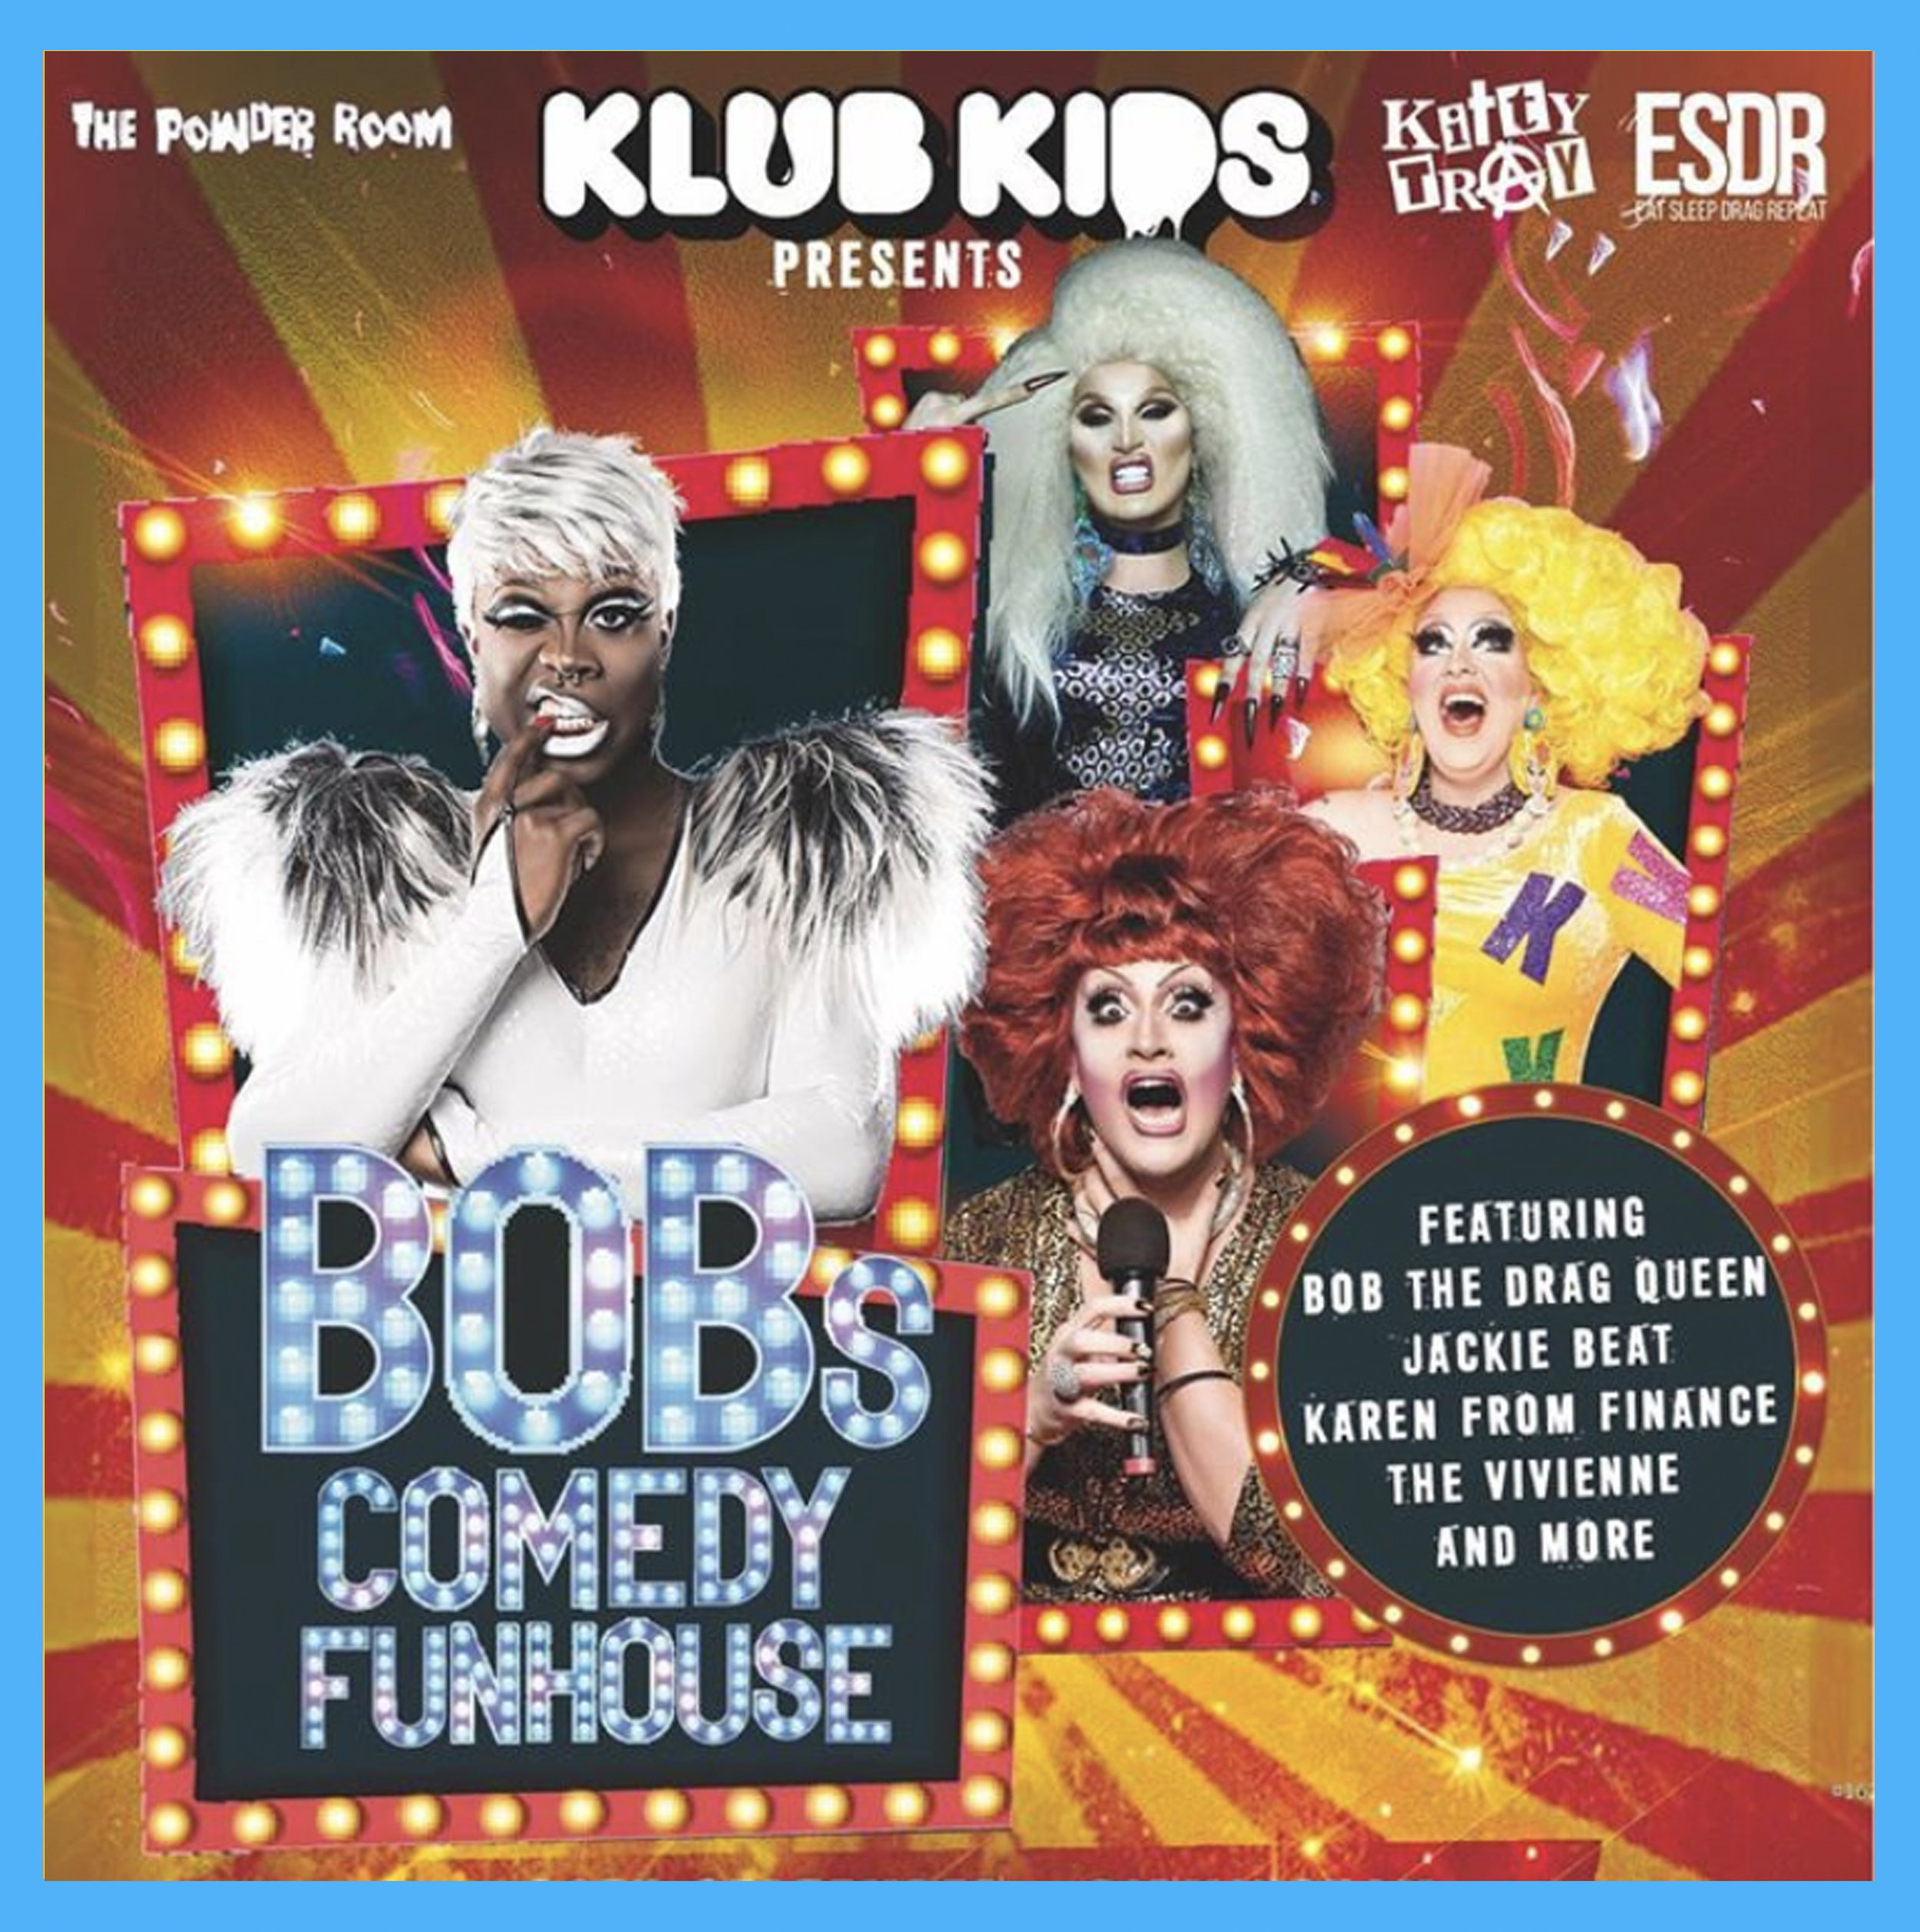 London, UK - October 2nd 2019, 7:30 PMThe Grand, ClaphamA comedy camp special show hosted and performances from Bob The Drag Queen, plus special performances from comedy legend Jackie Beat, Karen from Finance and Liverpool drag legend The Vivienne.Expect a show full of side splitting humour and some funhouse klub kids drama.